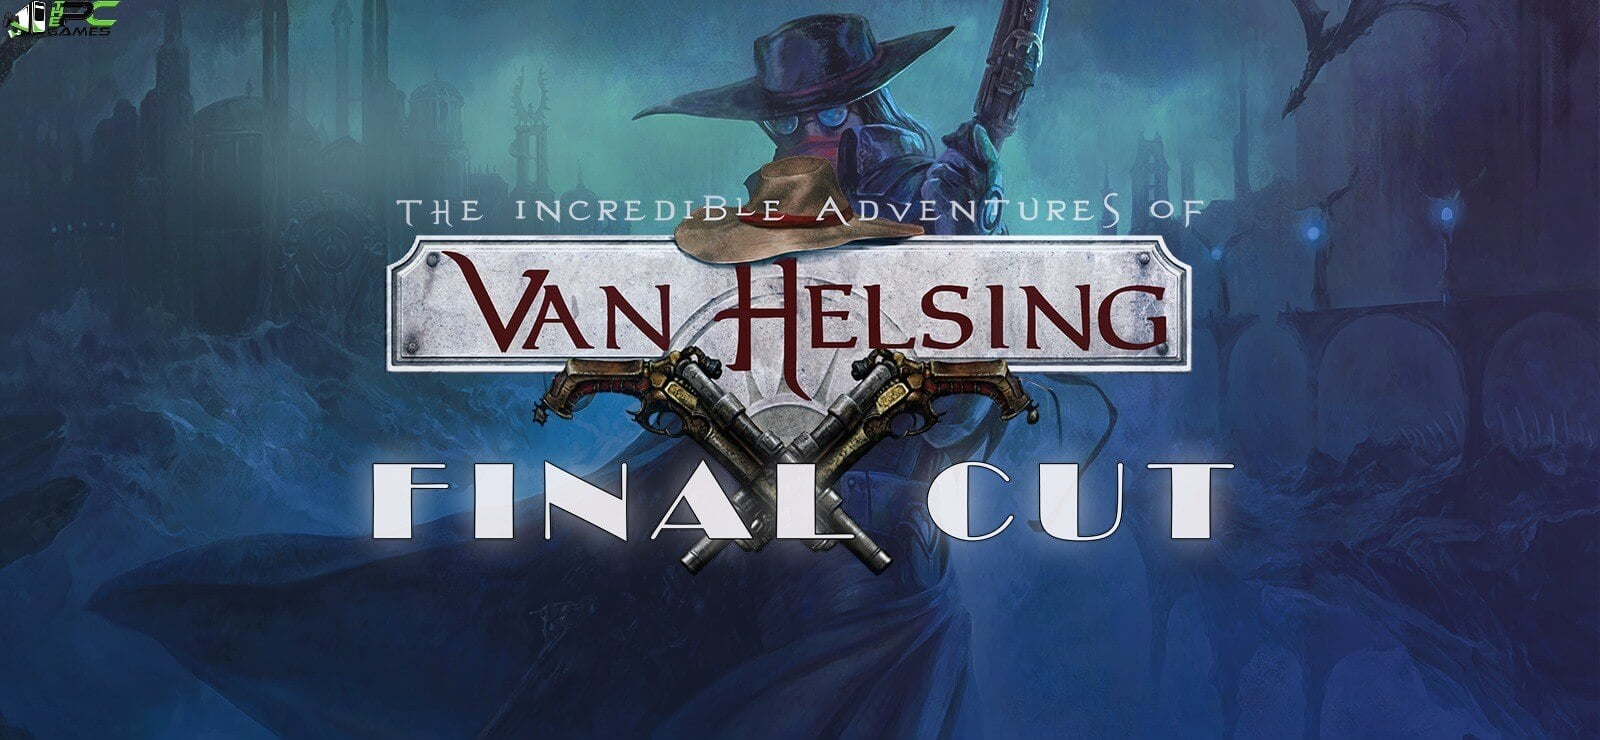 The Incredible Adventures of Van Helsing Final Cut V2 Free Download